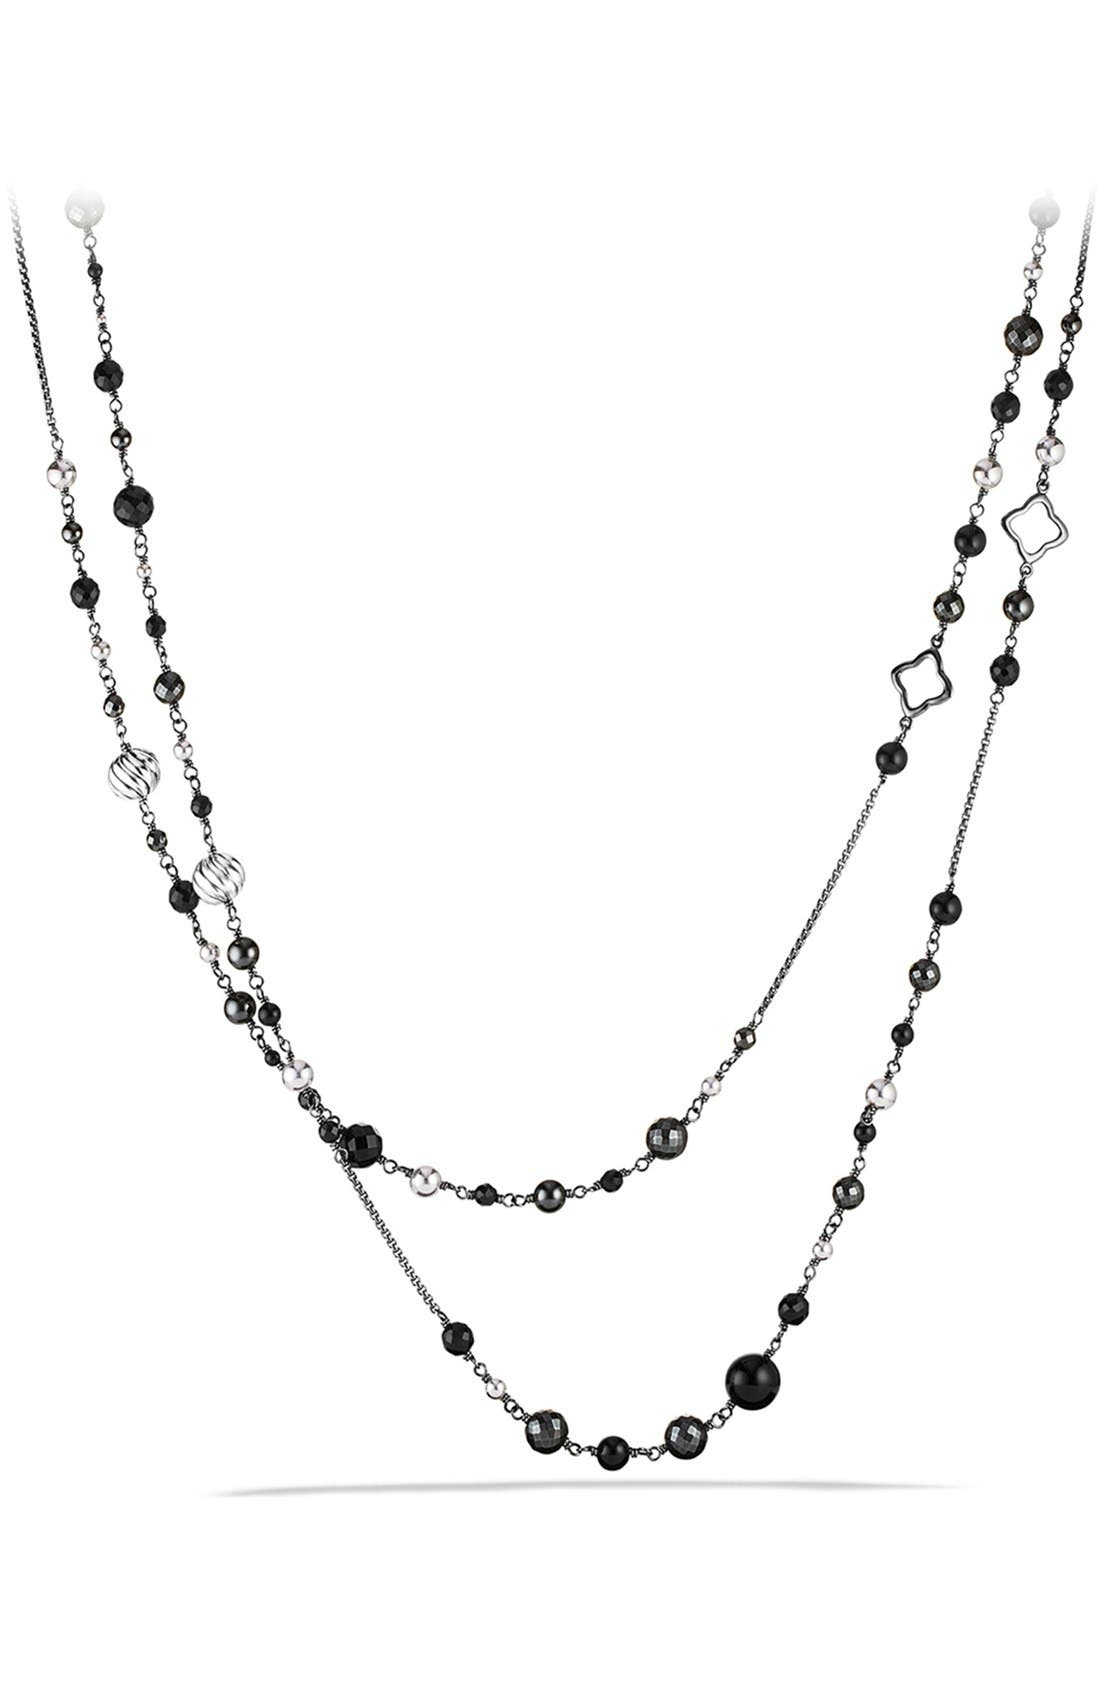 DAVID YURMAN 'DY Elements' Chain Necklace with Black